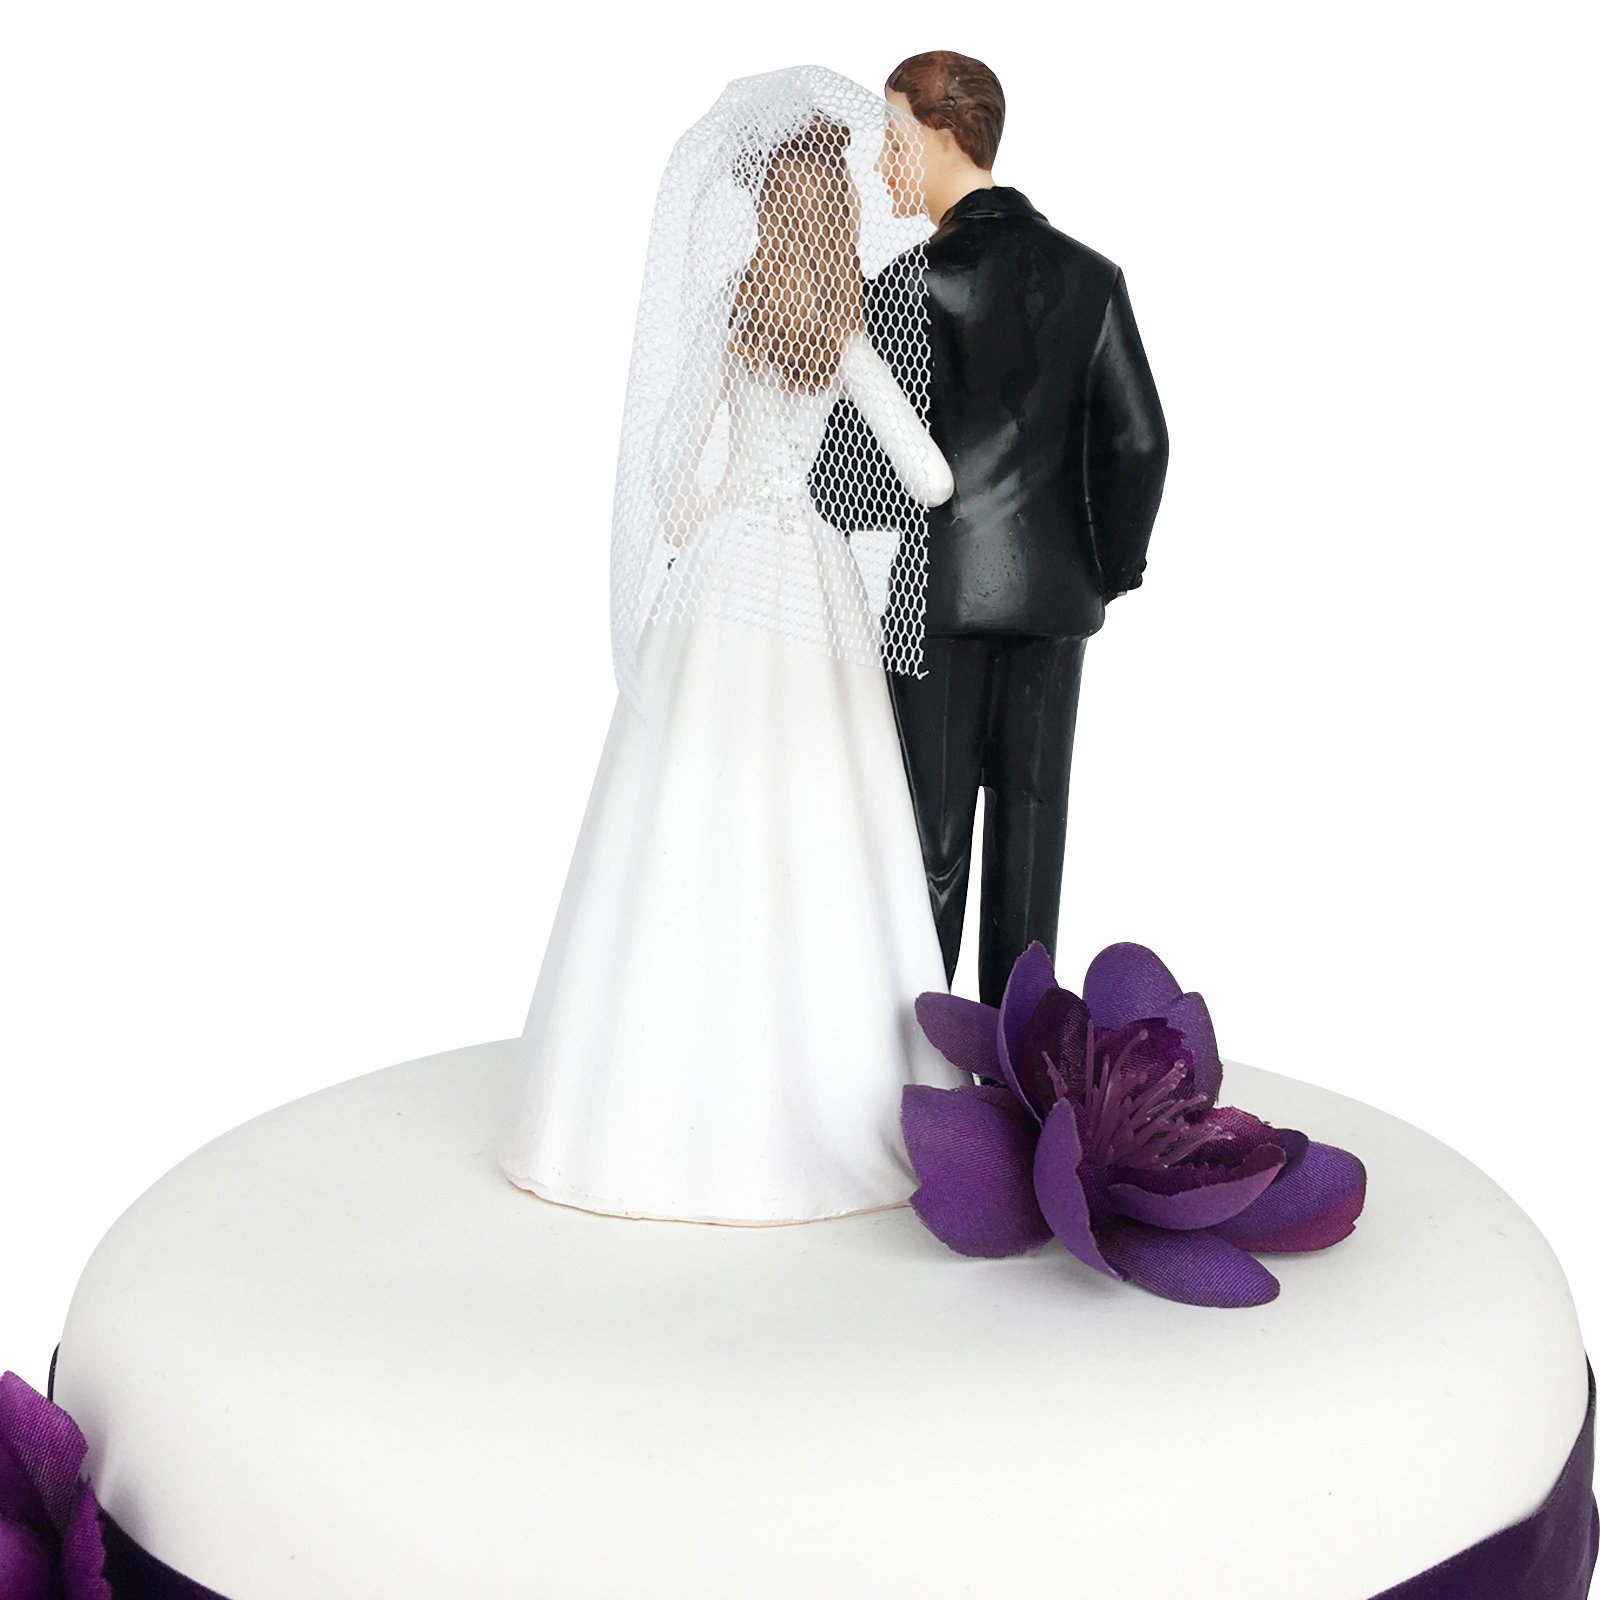 Wedding Cake Topper Funny & Romantic Groom And Bride holding hands with flowers Figurine | Toppers For Wedding Cakes Decoration | Hand Painted & Unique Figurines by zy retail (Image #2)